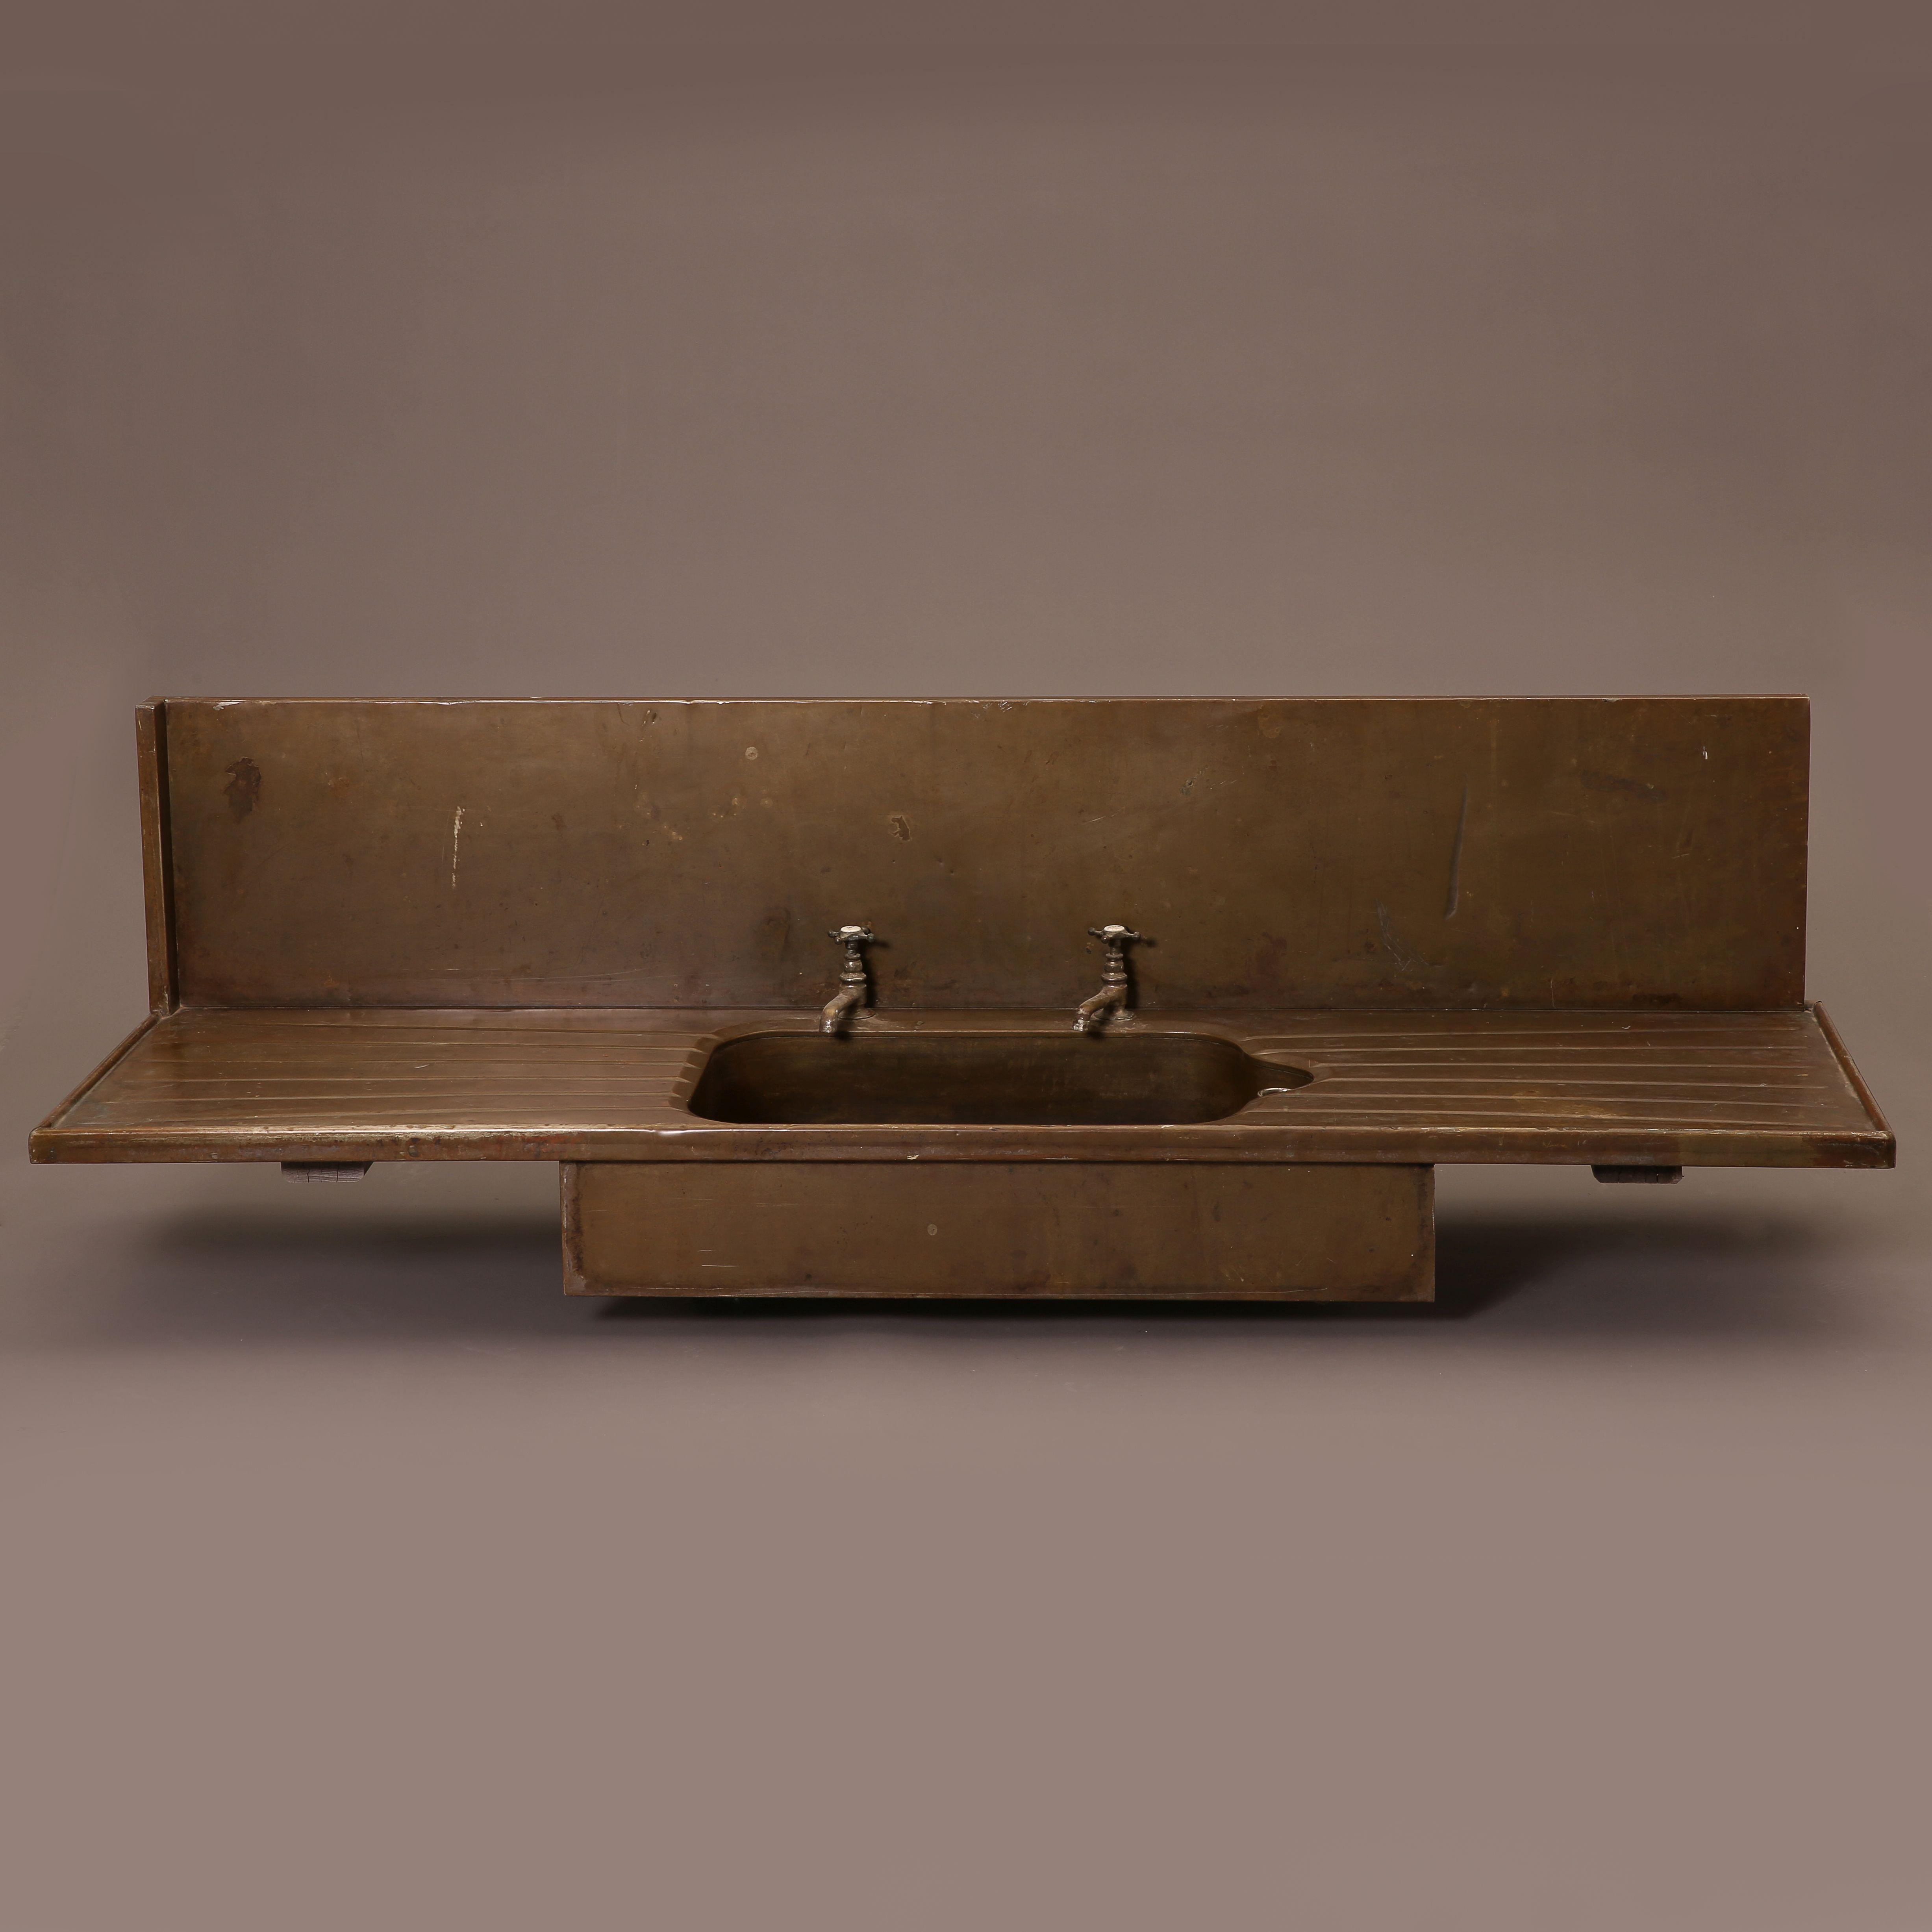 American, Copper and Tin Alloy Kitchen Sink